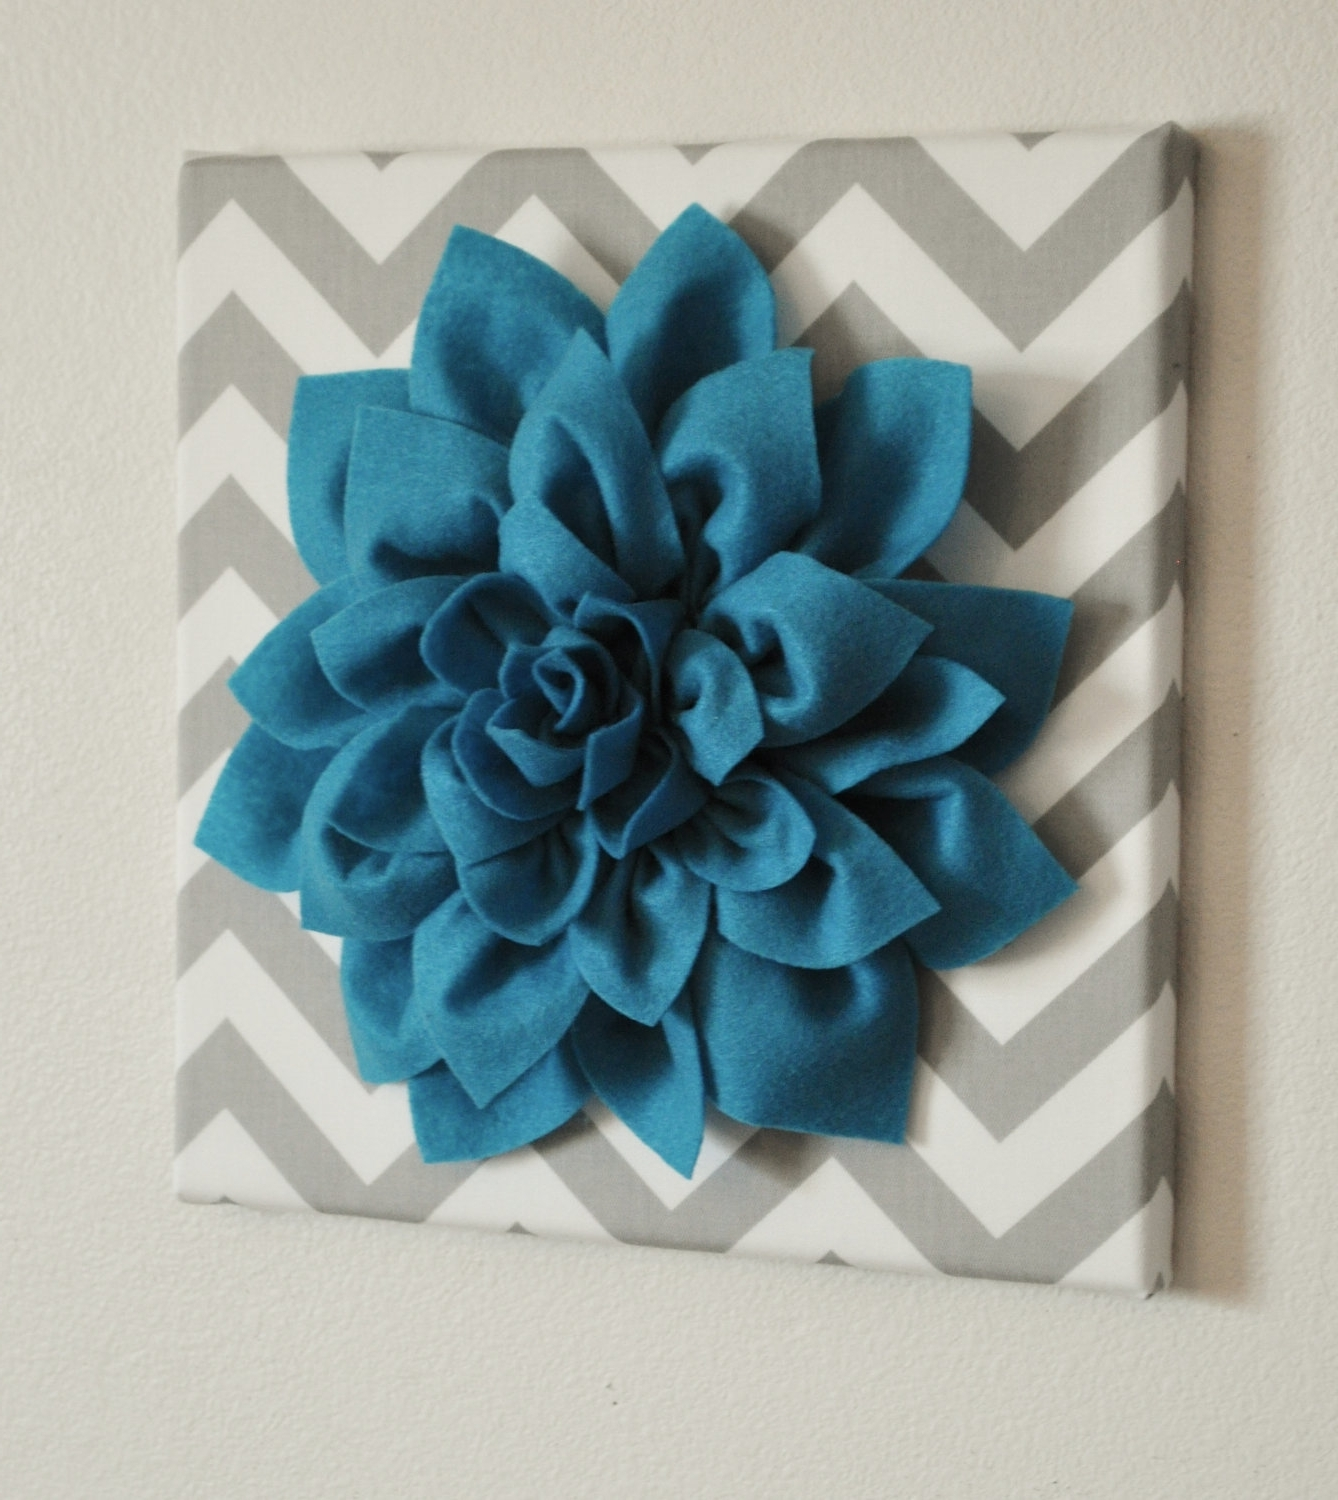 3D Wall Art Etsy With Best And Newest Marvelous 3D Flower Wall Decor 5 Fabric Art Magenta ~ Loversiq (View 4 of 15)